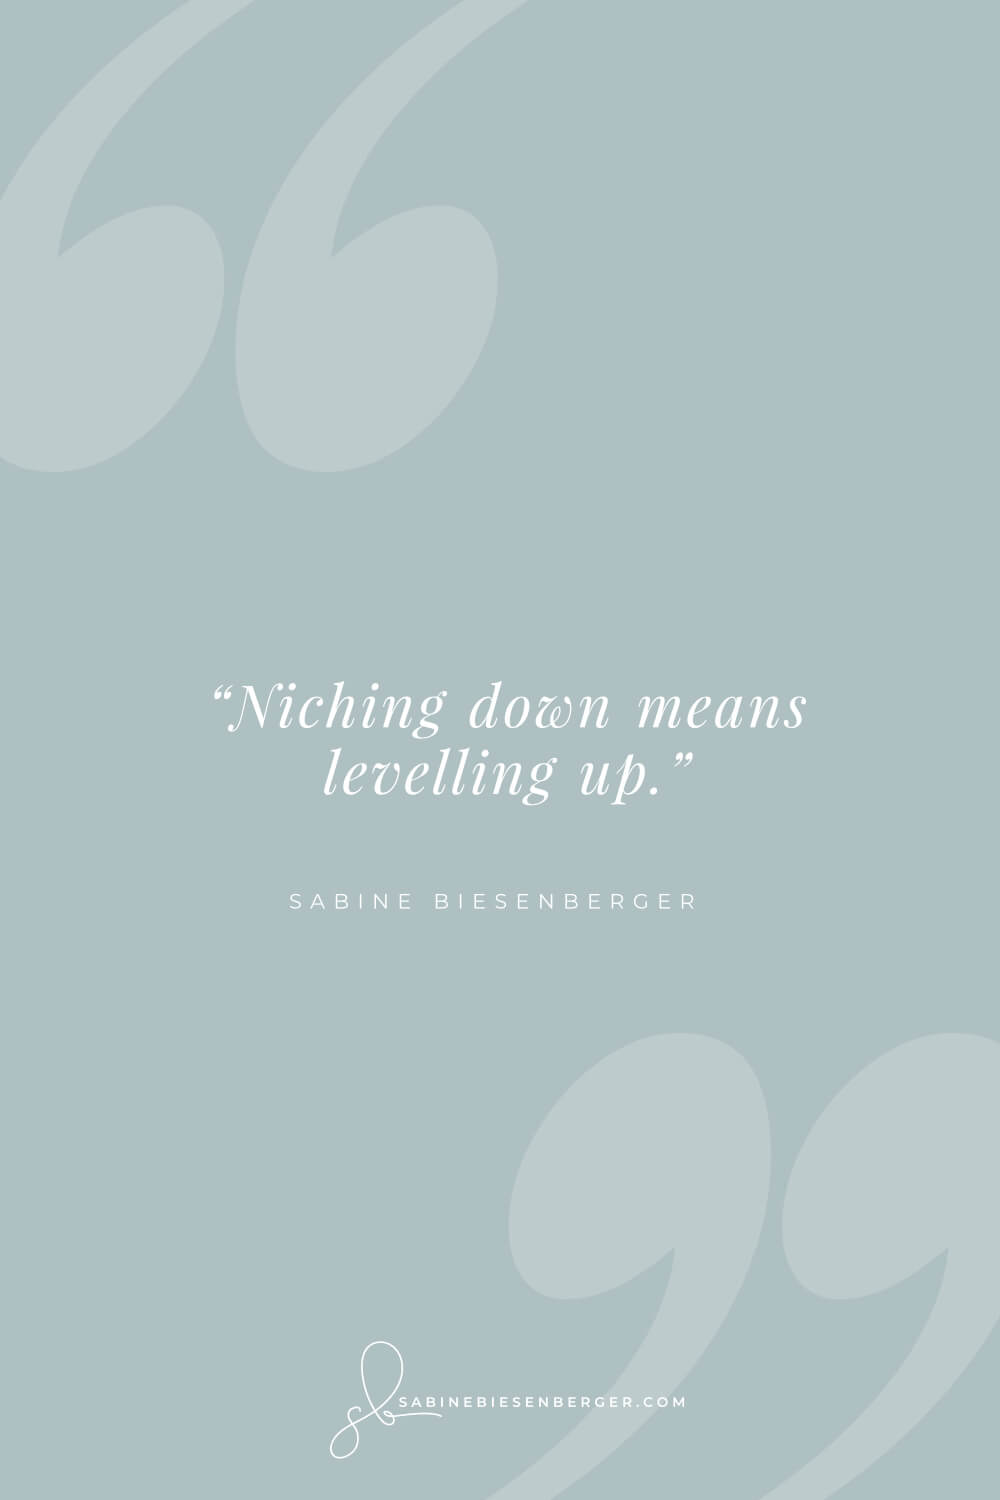 Niche market and mass market - Pin Quote 4 - sabinebiesenberger.com